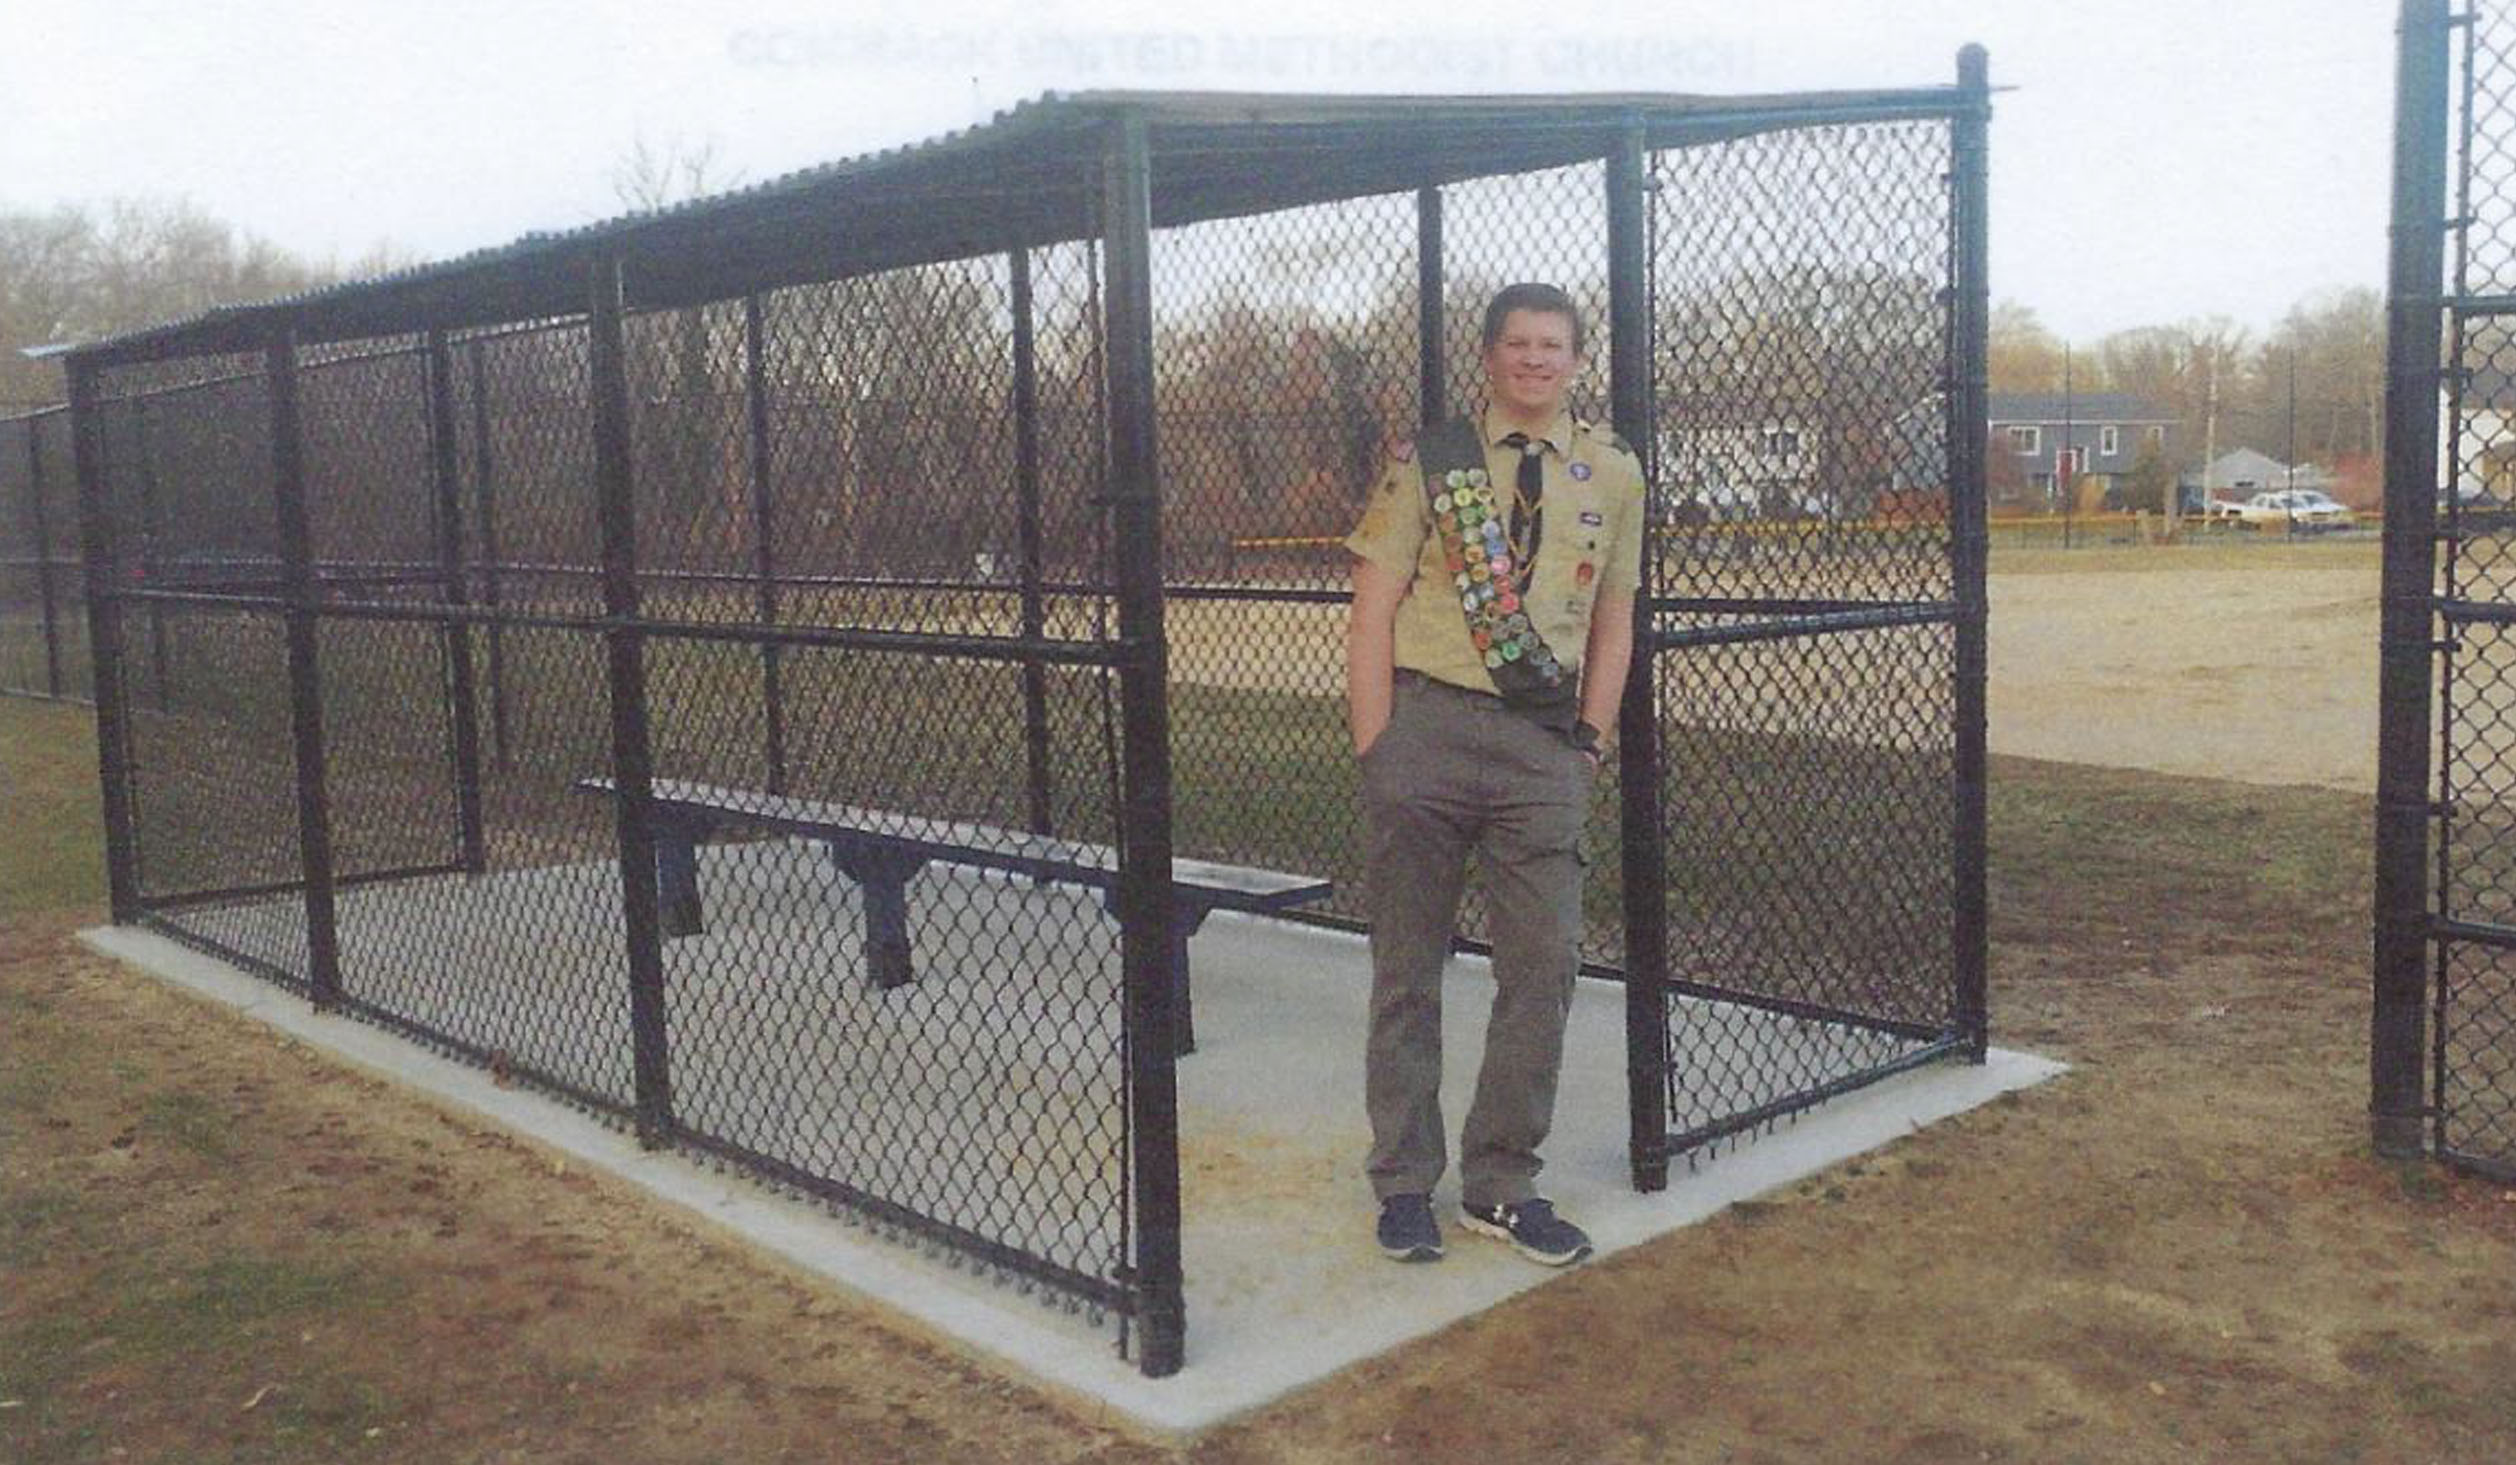 Eagle Scout Project - For the Islip Residents and the Islip Owls Baseball Organization